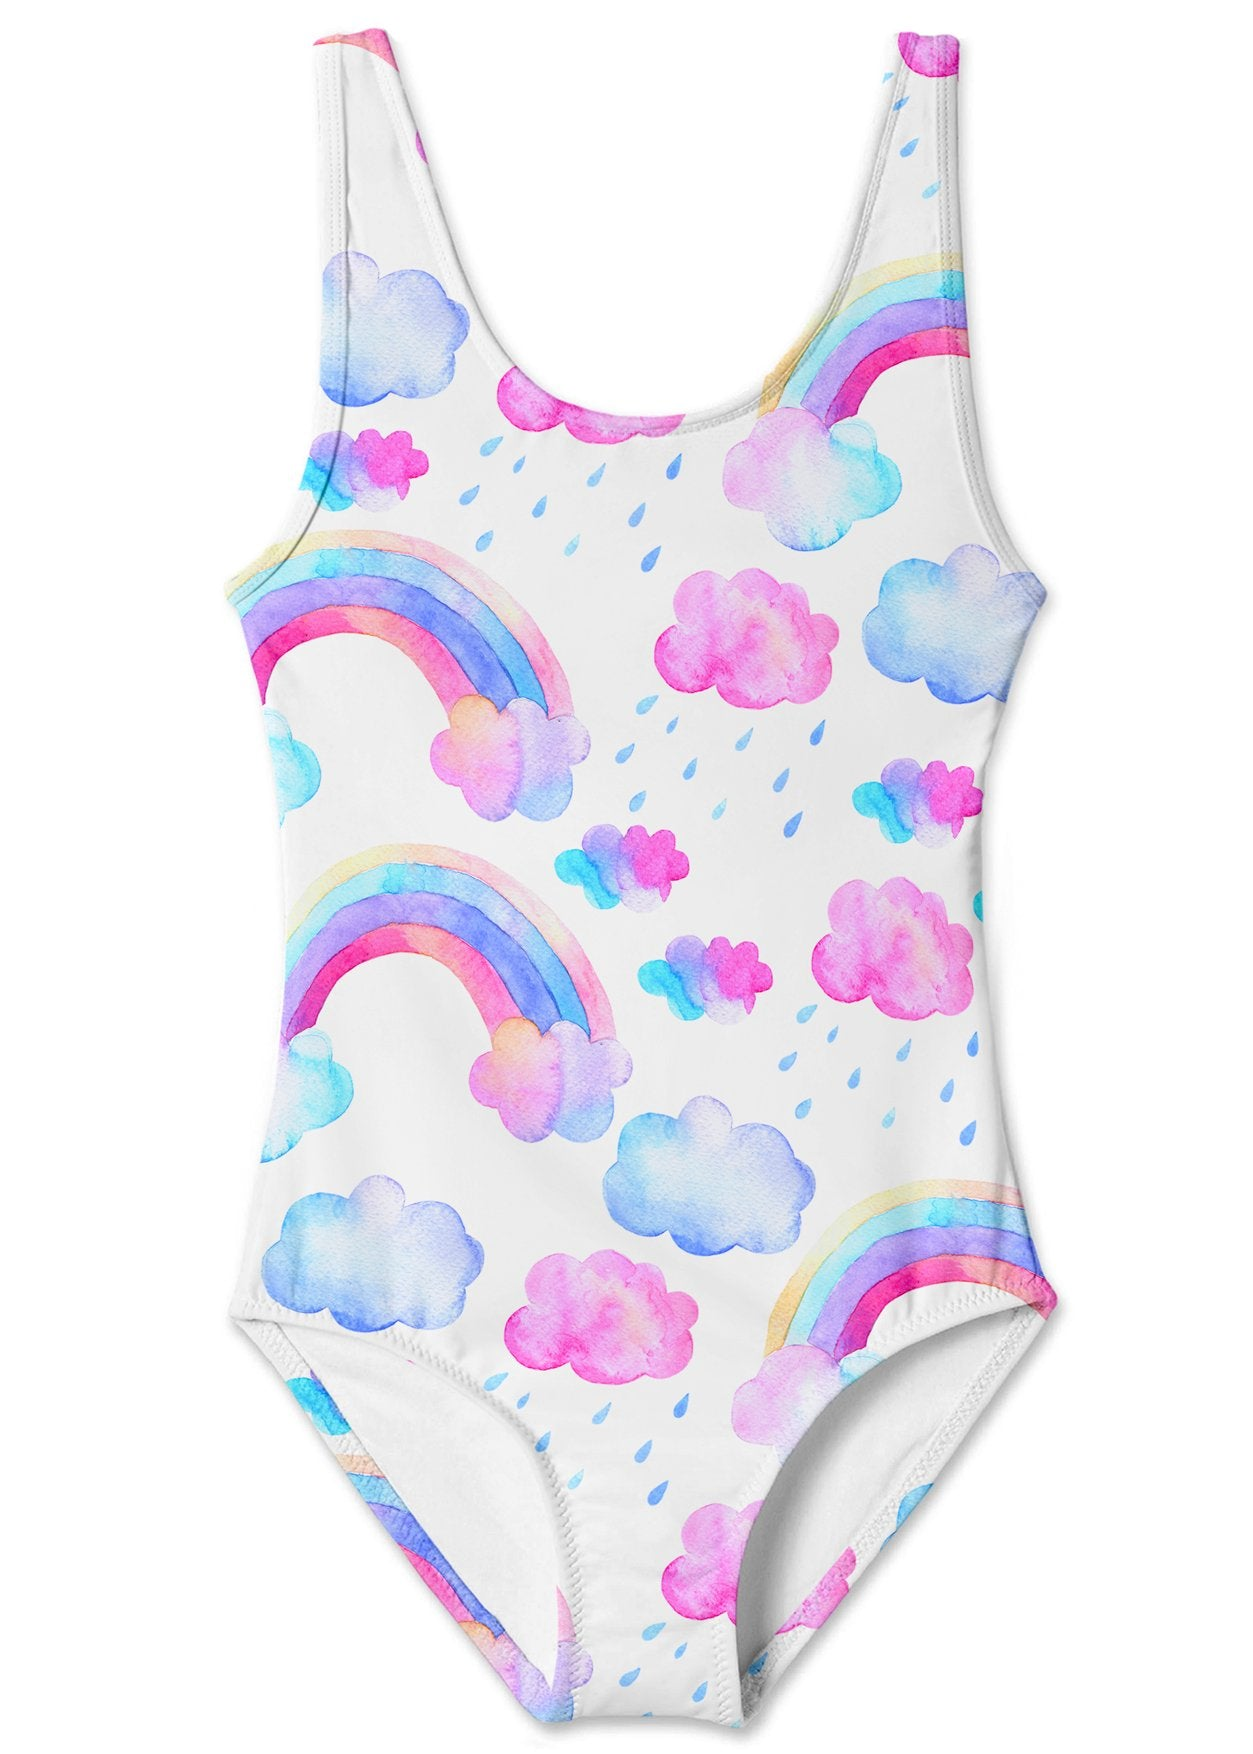 Rainbow and Clouds Tank Swimsuit for Girls